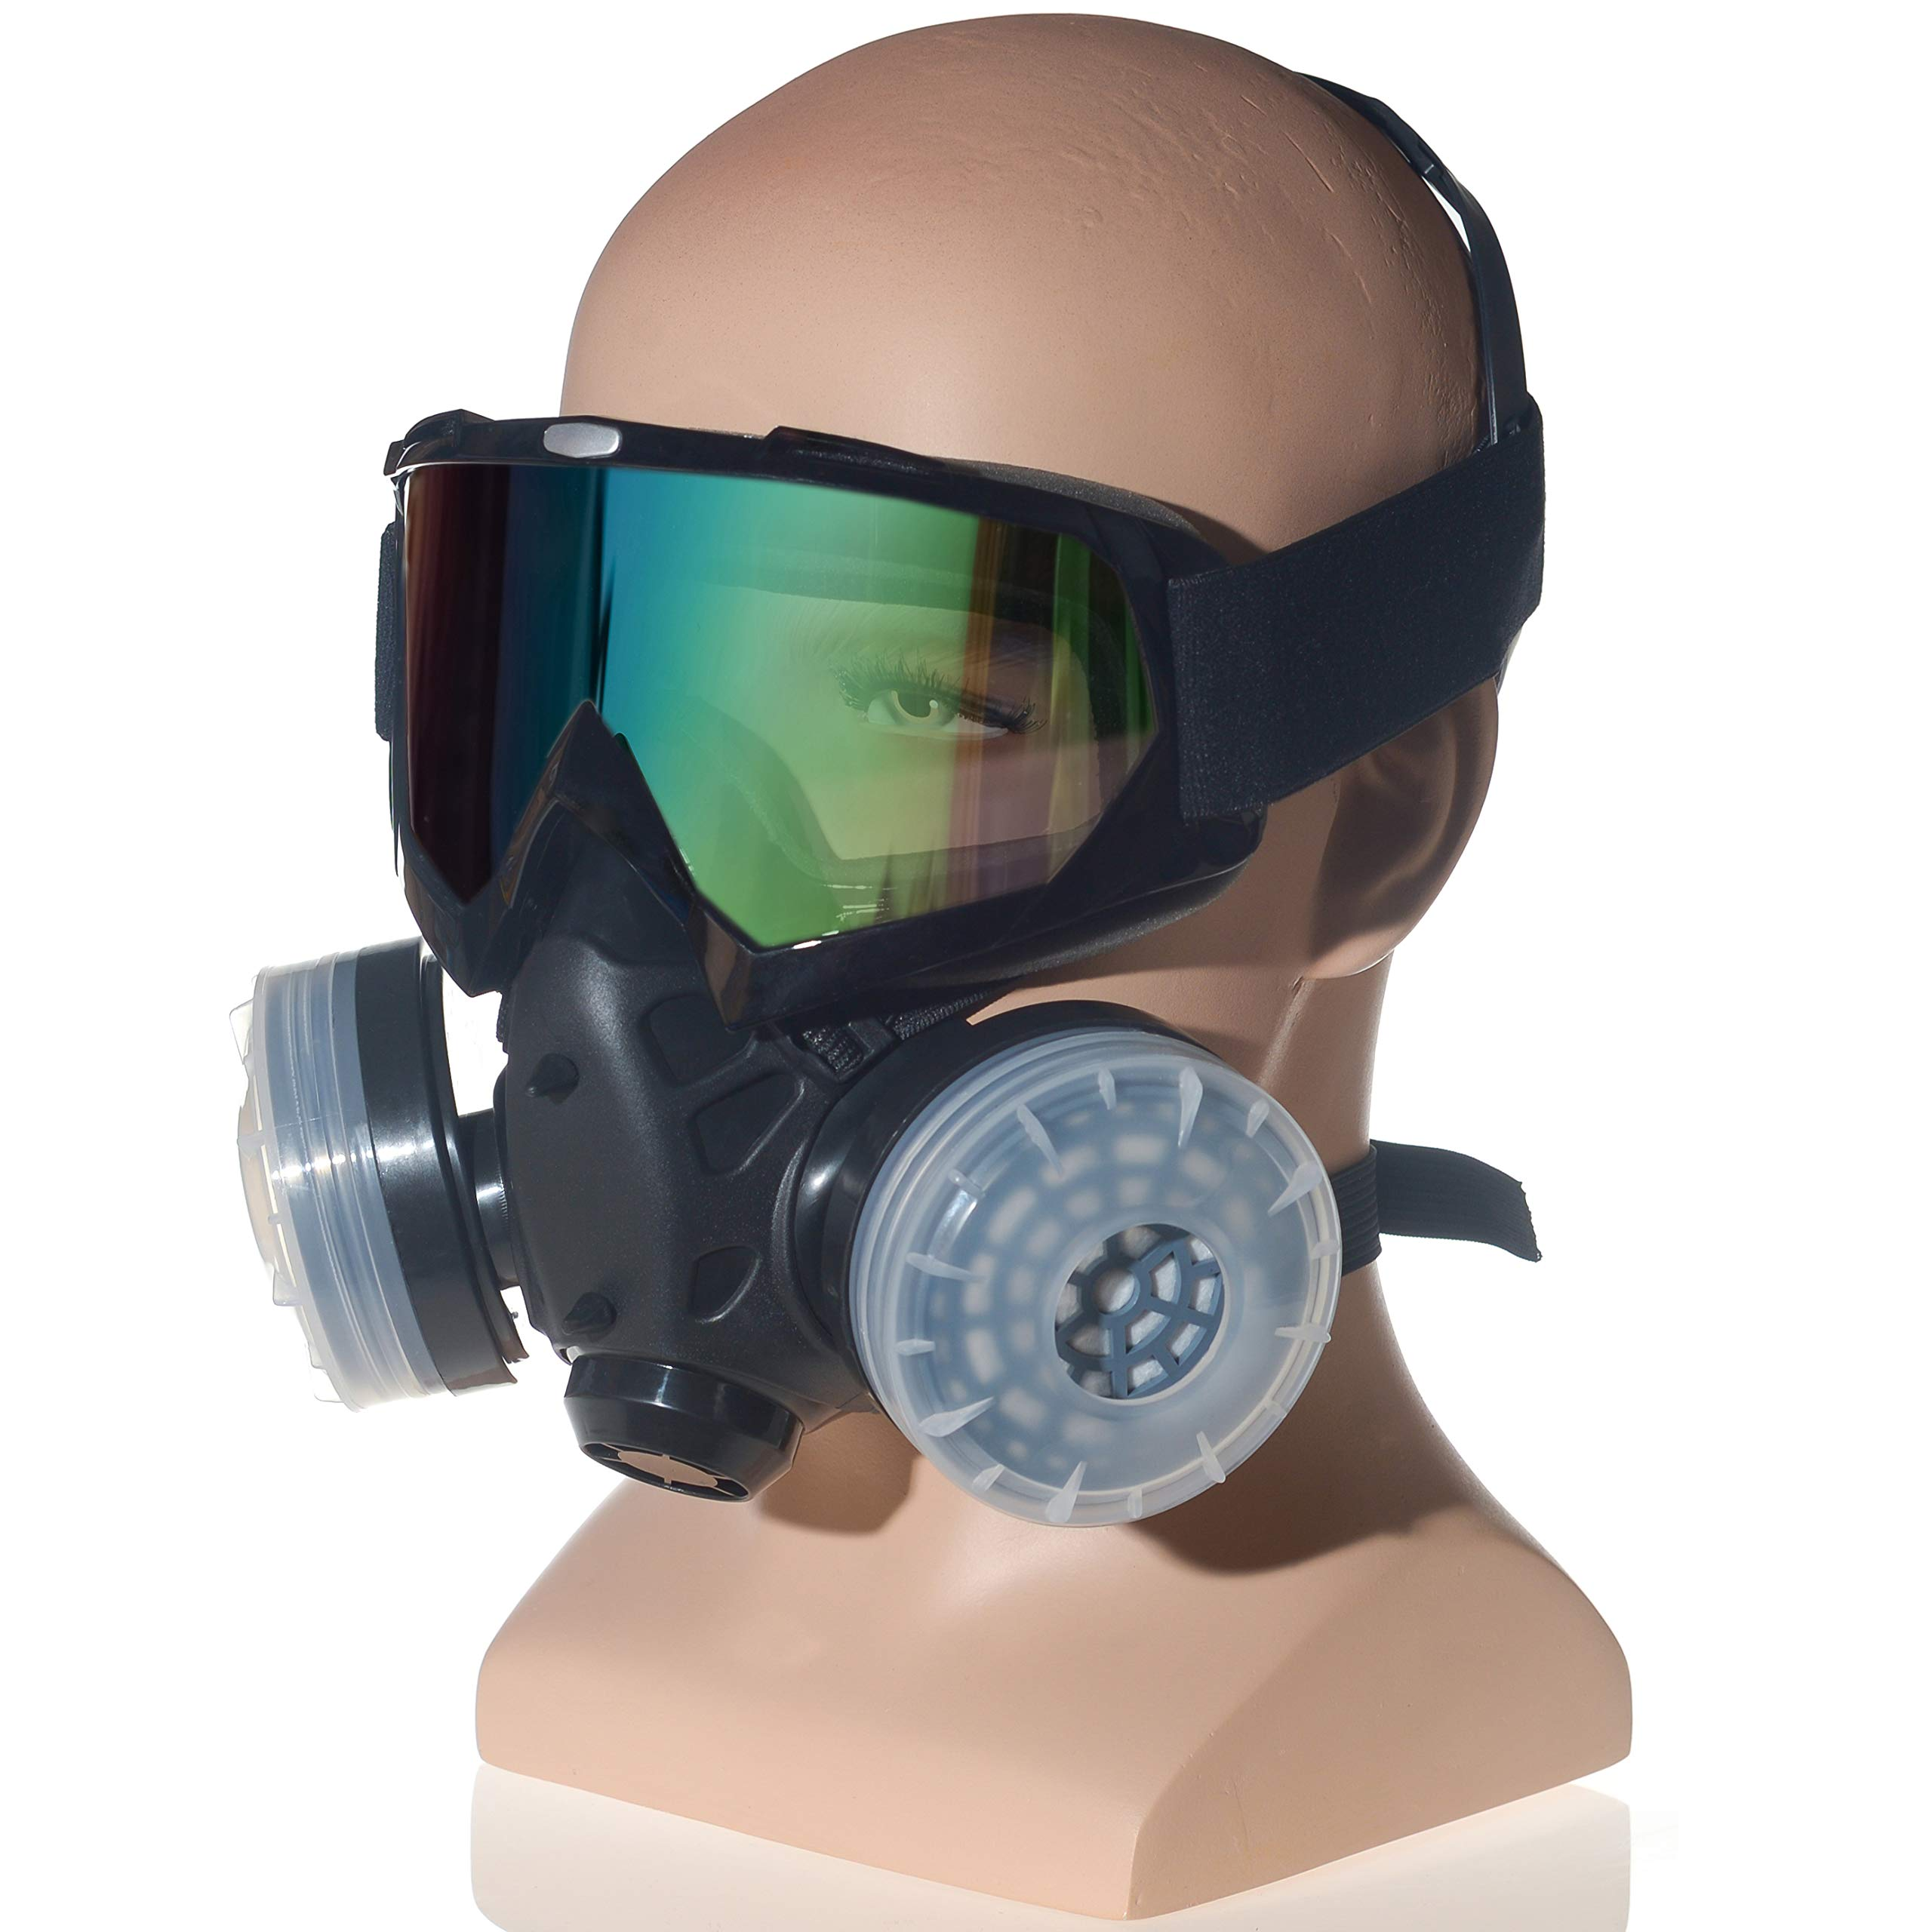 HXMY Anti-Dust Paint Respirator Reusable Face Mask Goggles Set by HXMY (Image #1)